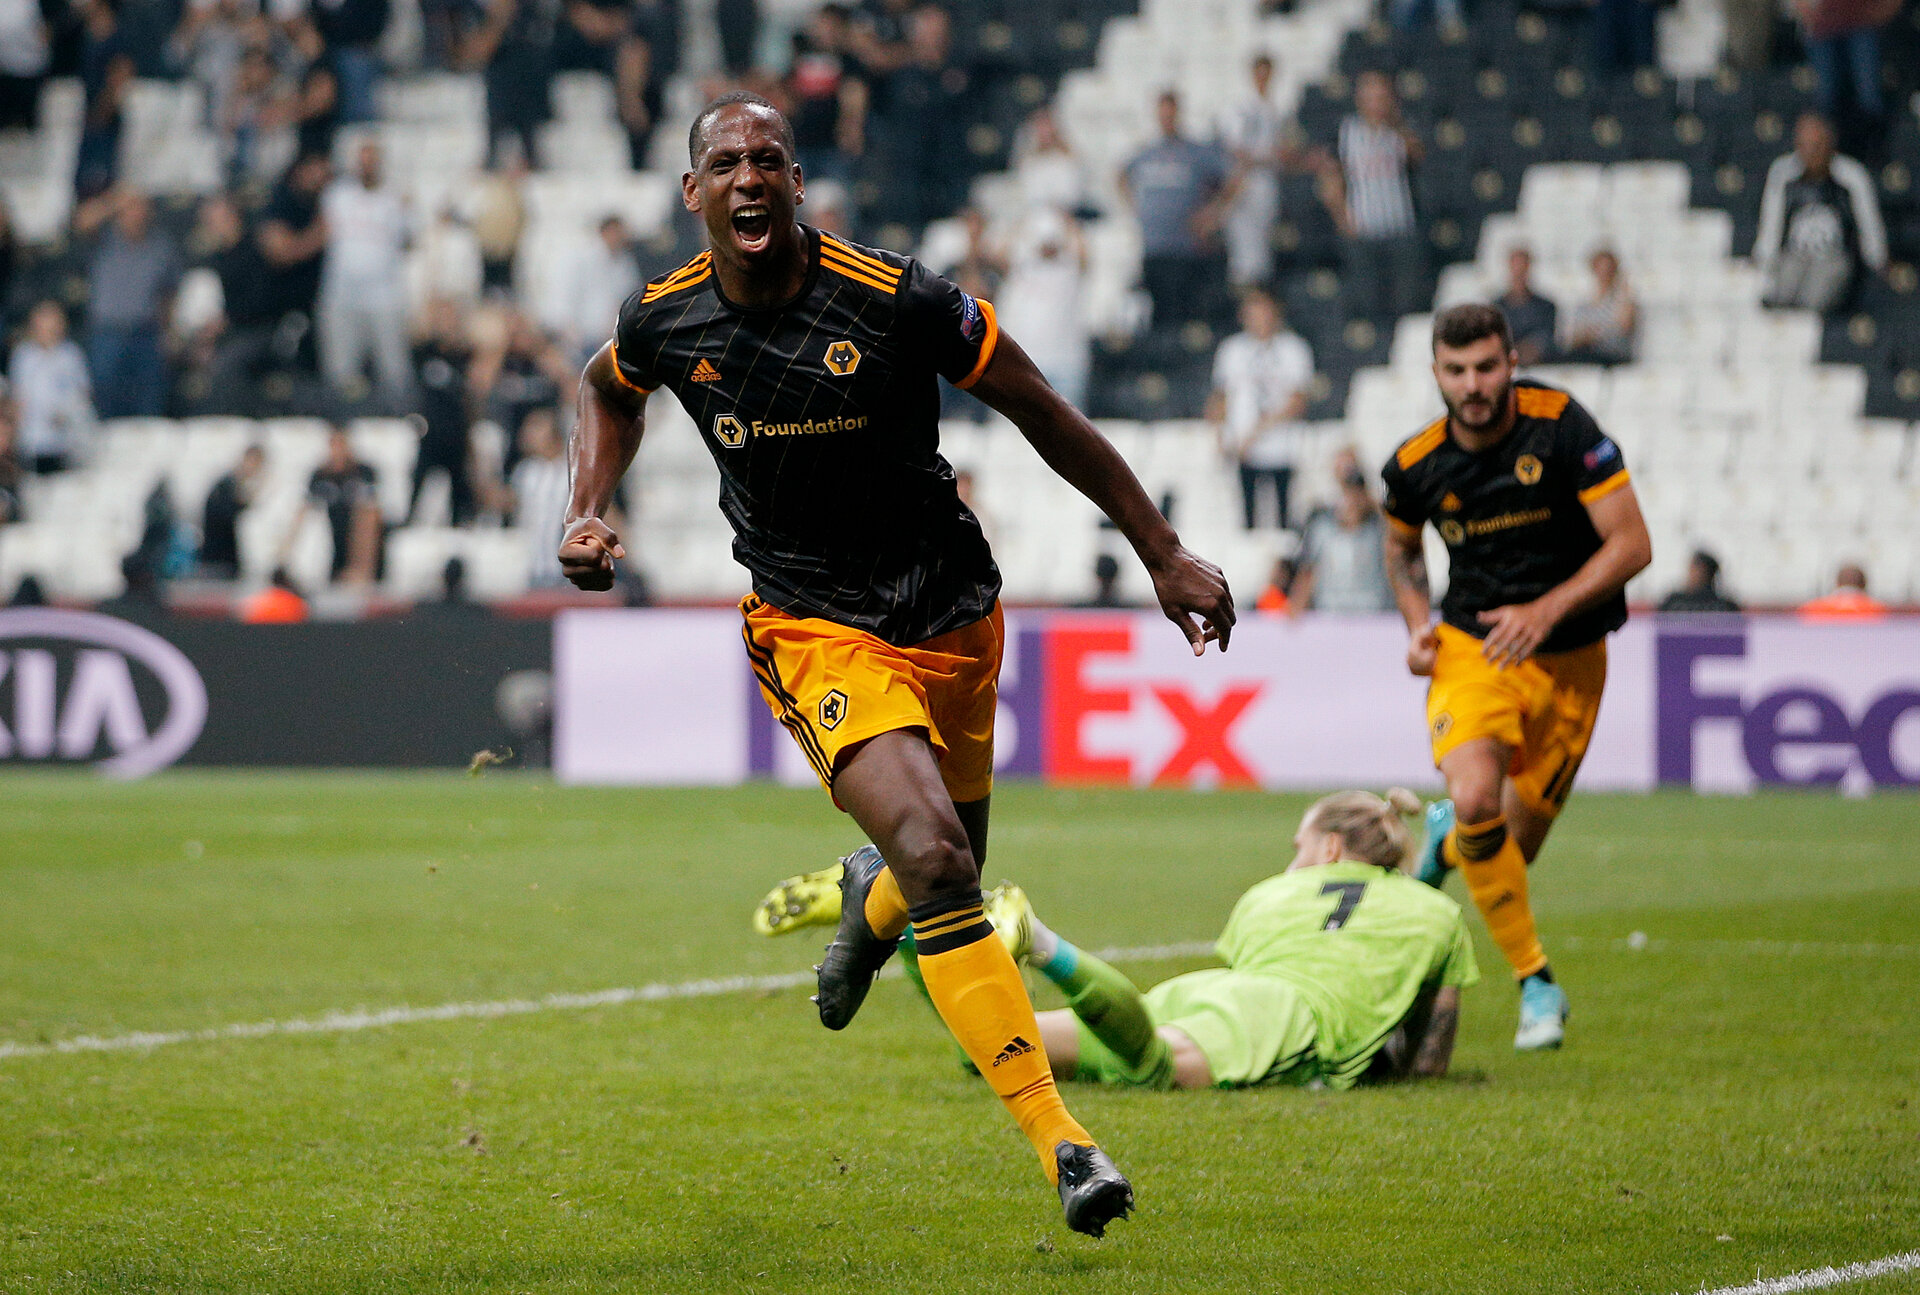 ISTANBUL, TURKEY - OCTOBER 03: Willy Boly of Wolverhampton Wanderers celebrates after scoring his team's first goal during the UEFA Europa League group K match between Besiktas and Wolverhampton Wanderers at Vodafone Park on October 03, 2019 in Istanbul, Turkey. (Photo by Dean Mouhtaropoulos/Getty Images)